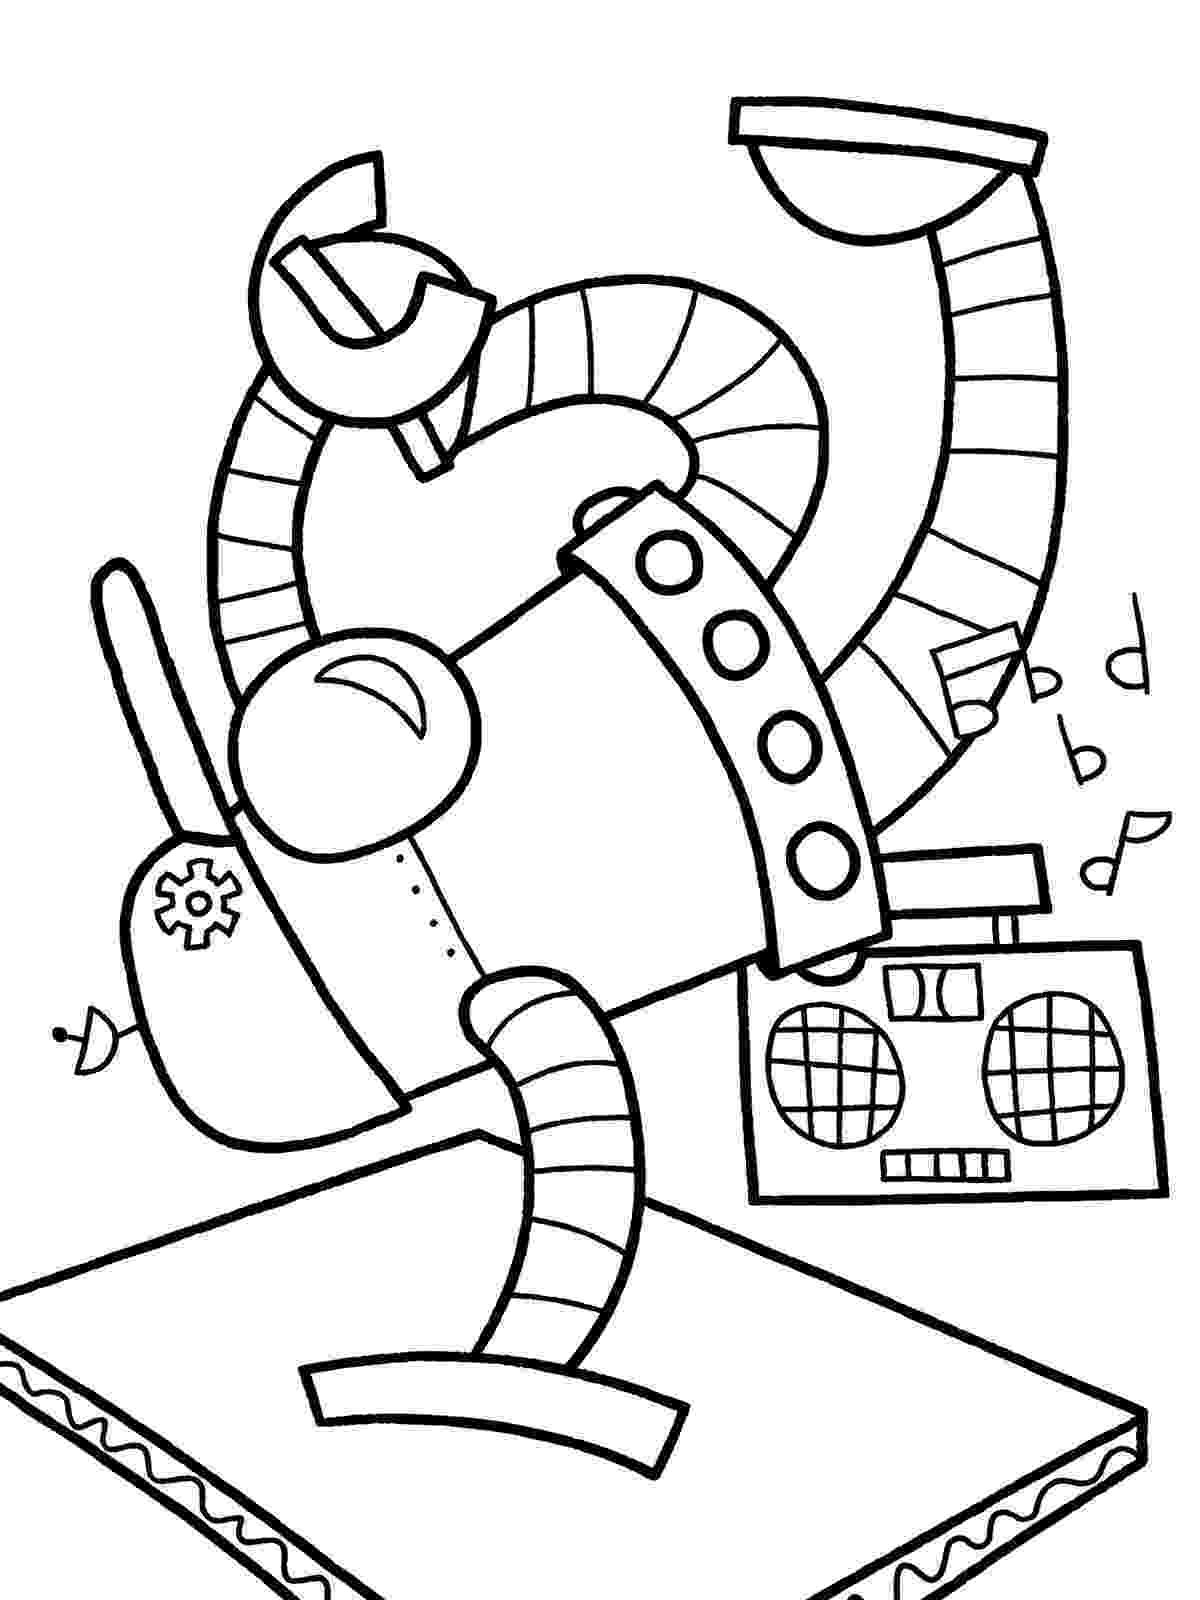 coloring page robot smiling robot coloring page free printable coloring pages coloring page robot